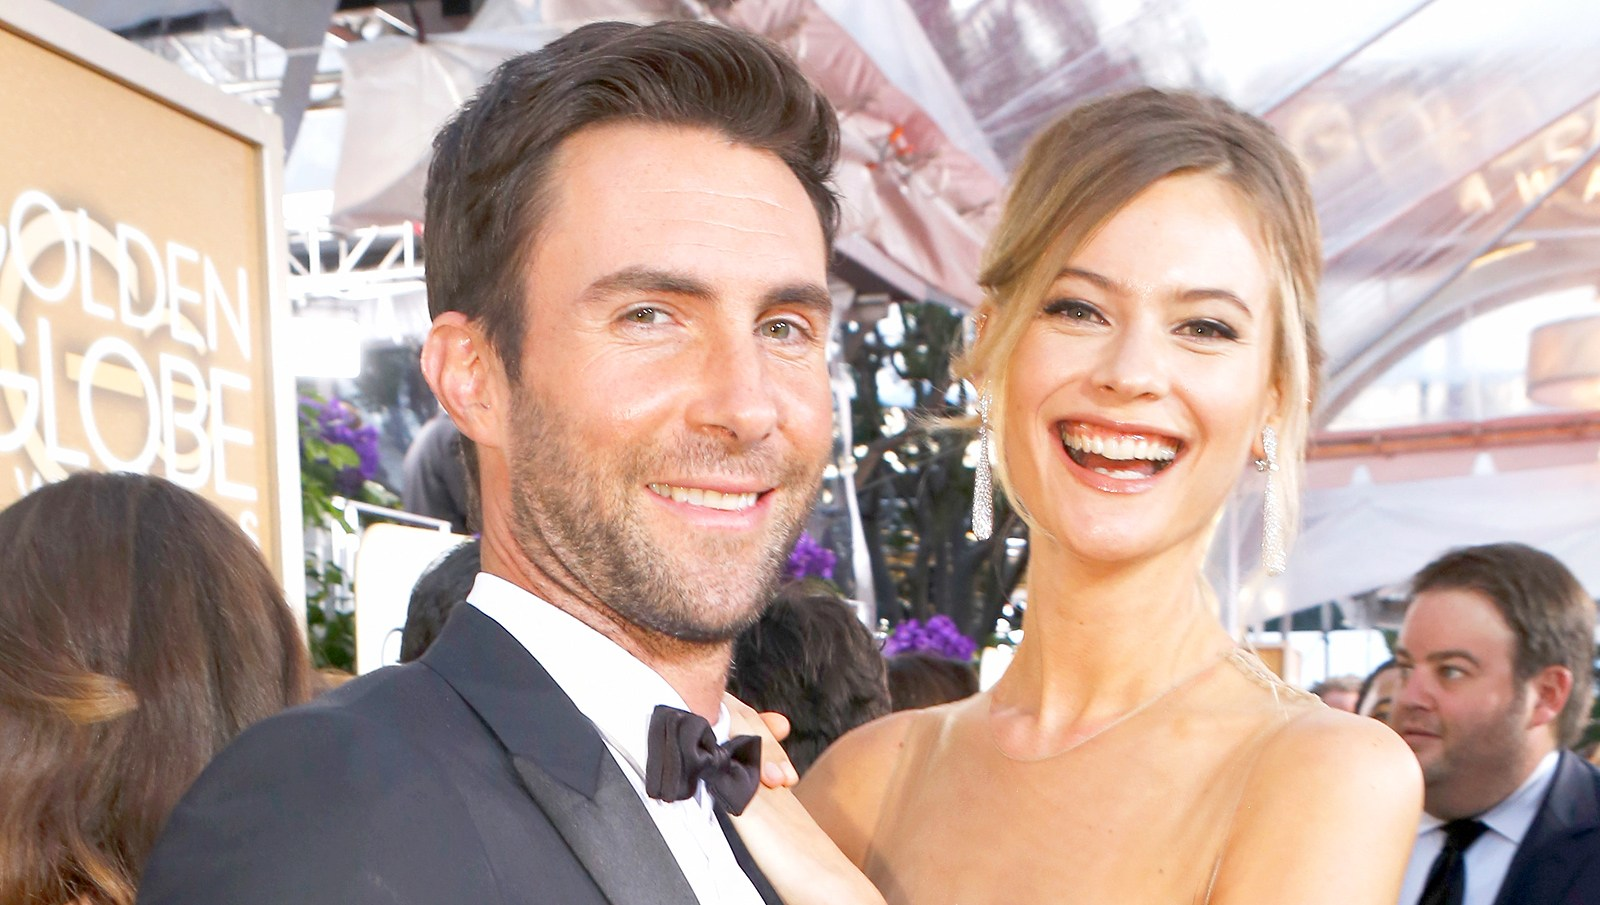 Adam Levine and model Behati Prinsloo arrive to the 72nd Annual Golden Globe Awards held at the Beverly Hilton Hotel.